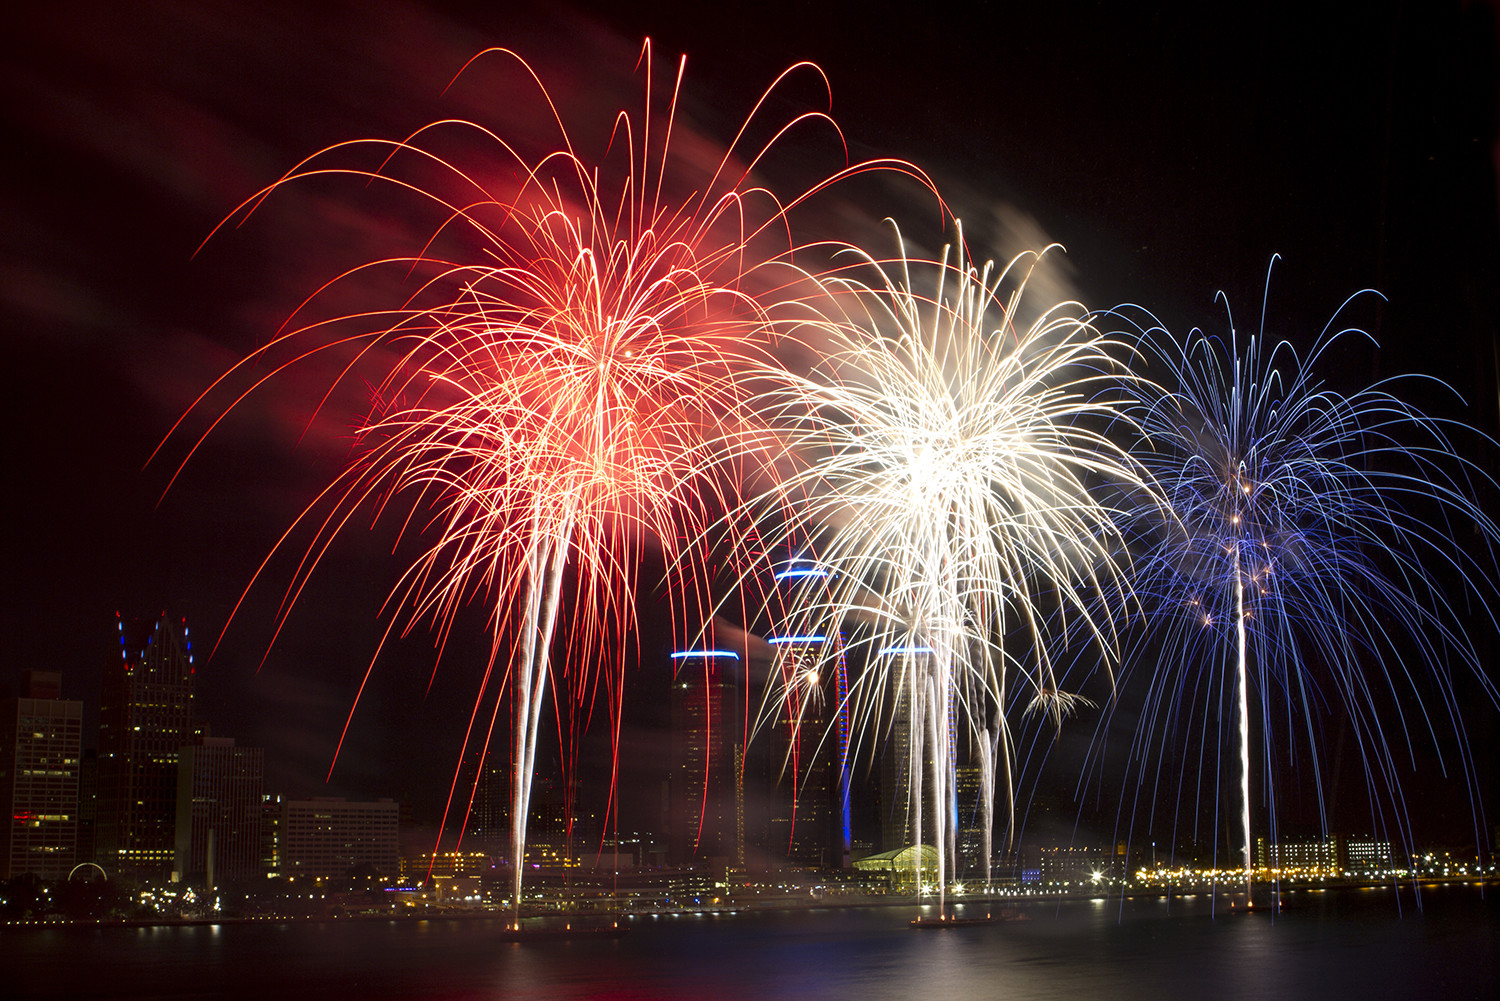 3 easy tips for great fireworks photos